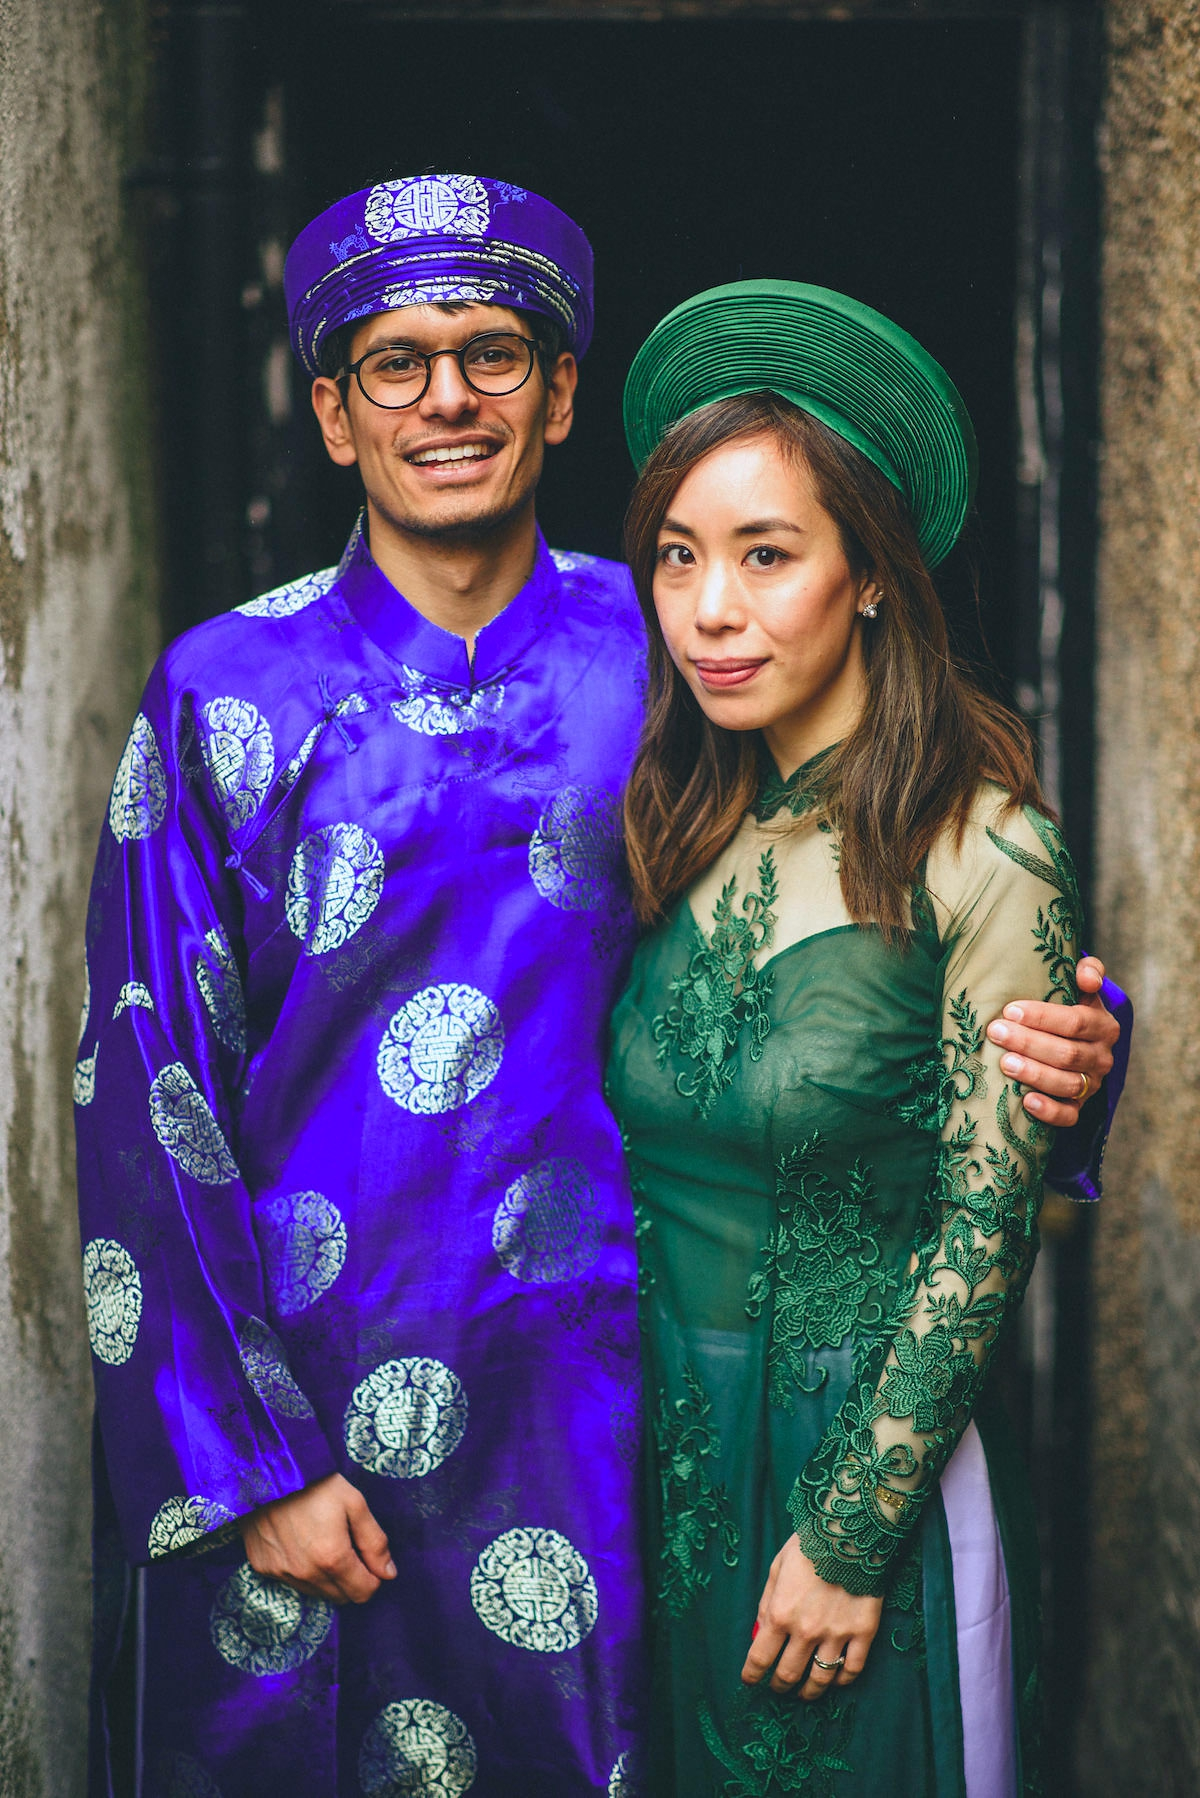 174a435546d Vietnamese Fusion Wedding - A Traditional Dress and Tea Ceremony for a  Vietnamese Fusion Wedding in ...